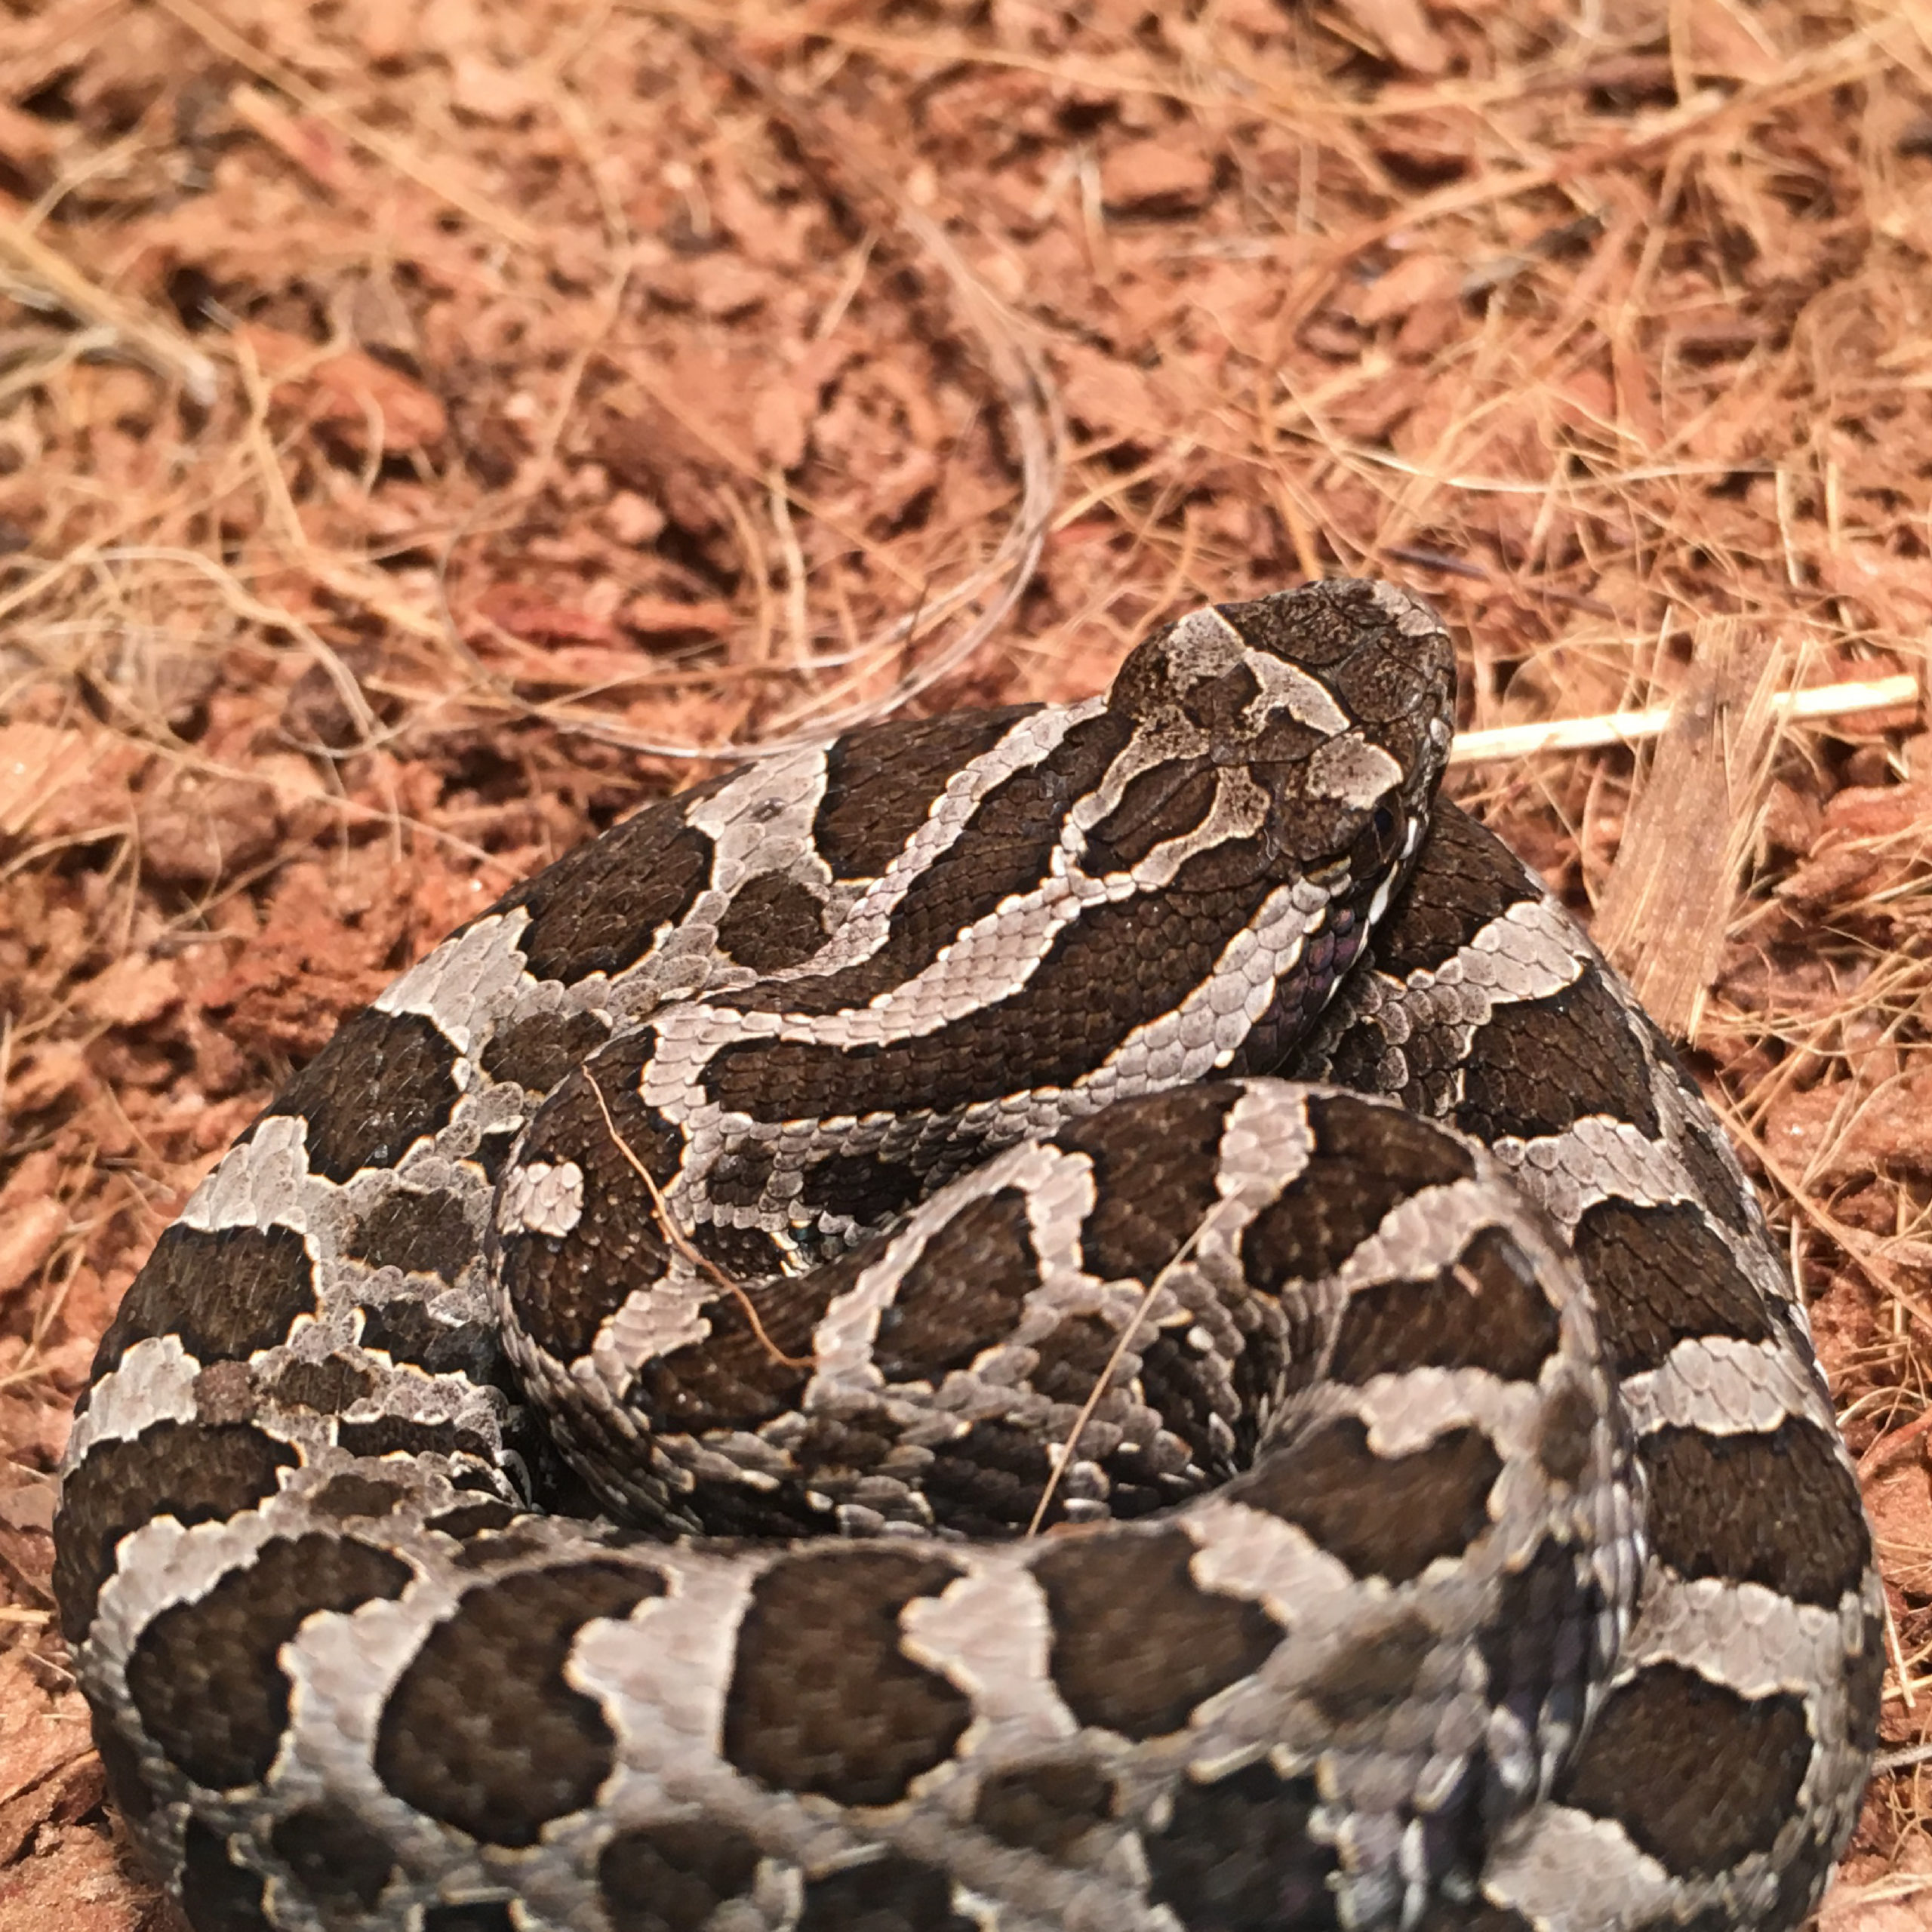 Wood shavings are provided as substrate for massasauga rattlesnakes while they are in captivity awaiting release.